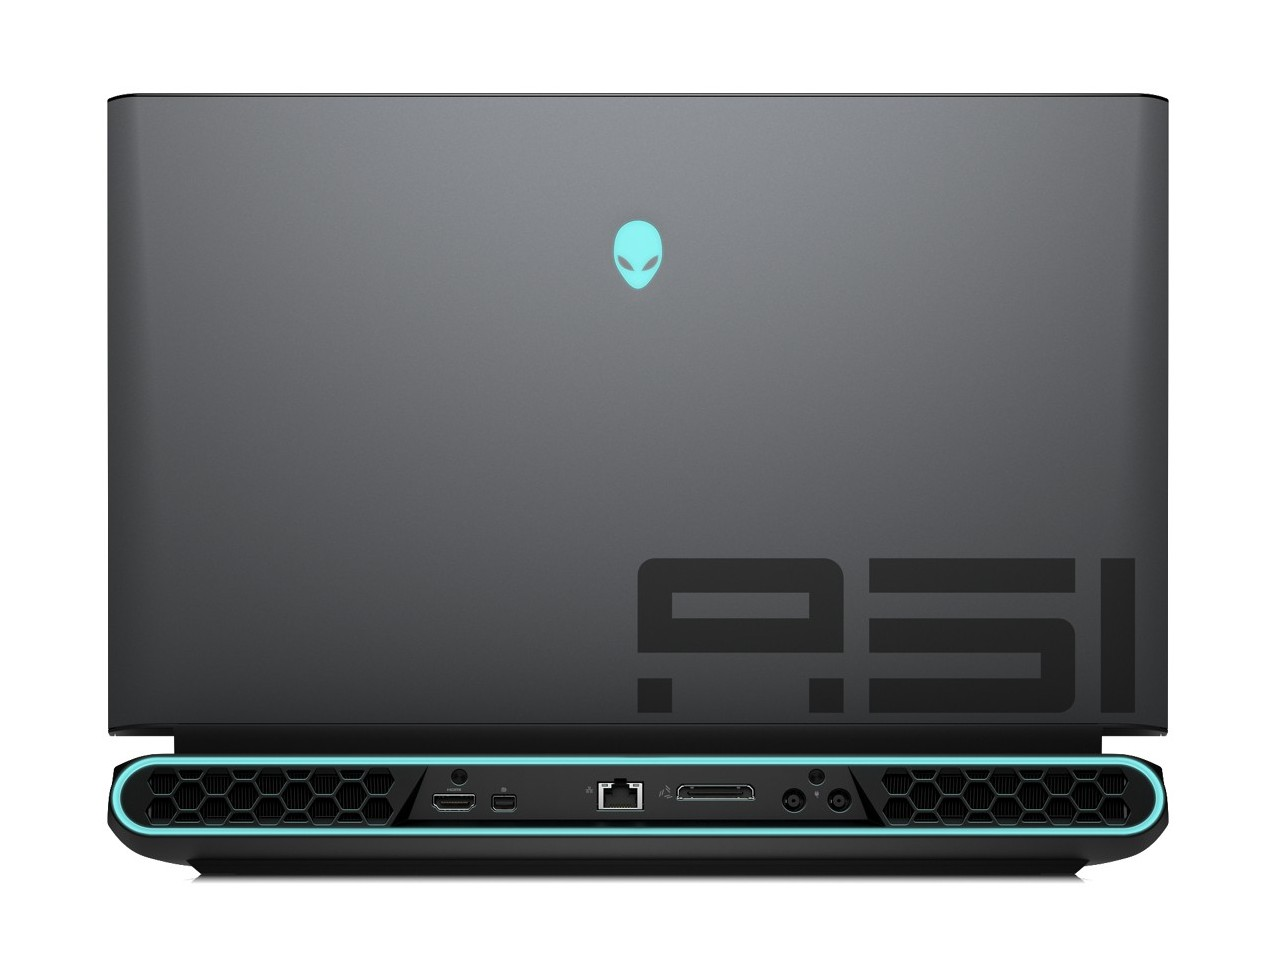 DELL ALIENWARE M18X NOTEBOOK NVIDIA GEFORCE GTX 460M VGA WINDOWS 7 DRIVER